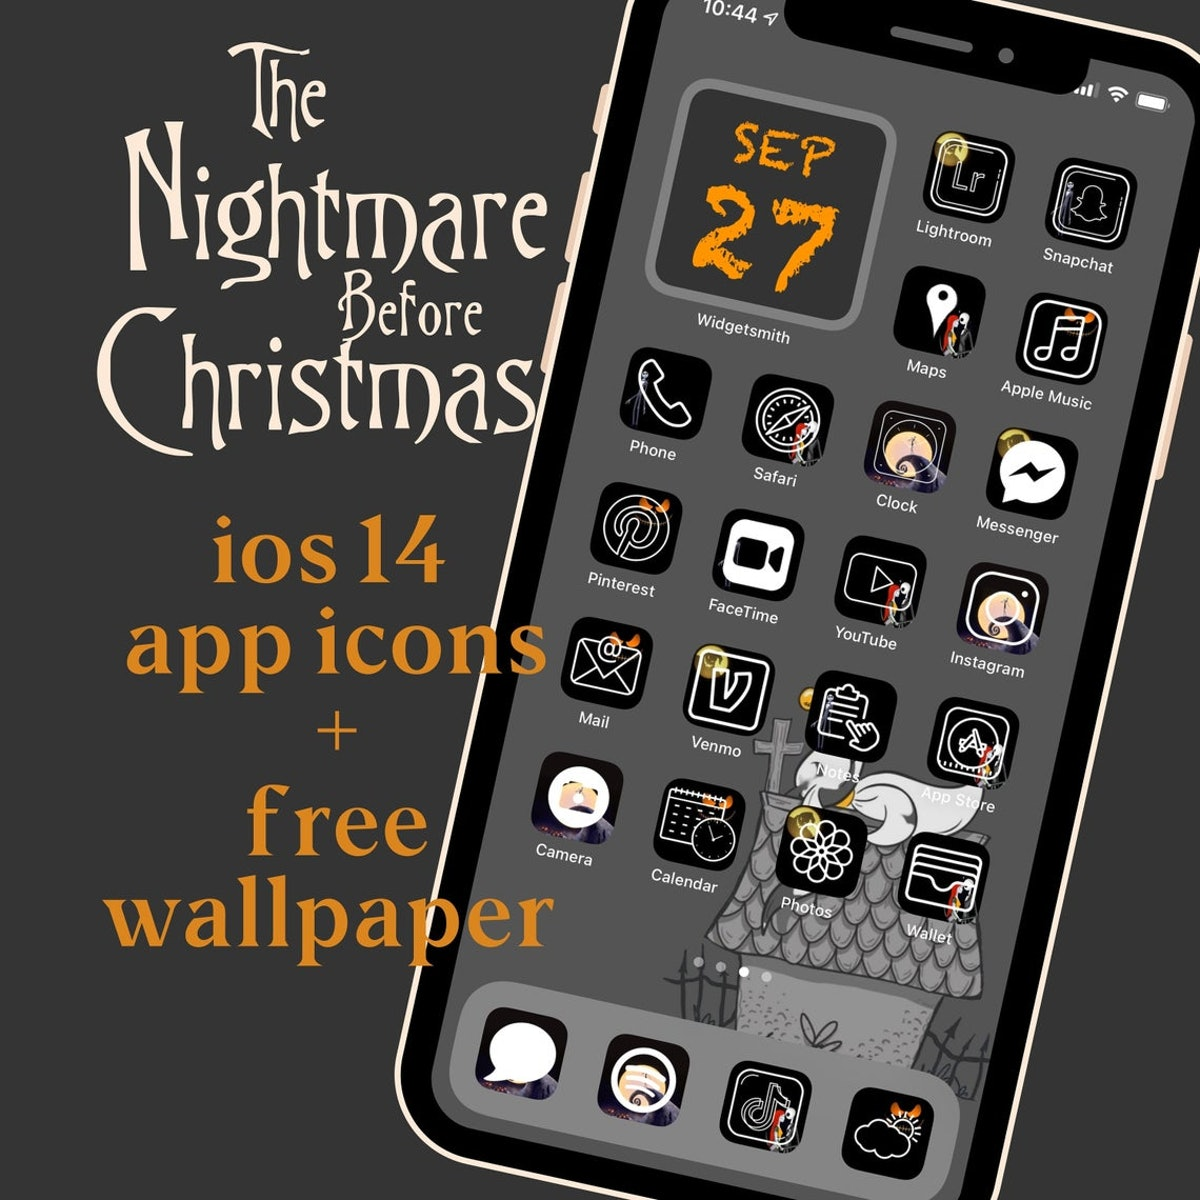 These Halloween iOS 14 Home Screen ideas include some orange and black color schemes.